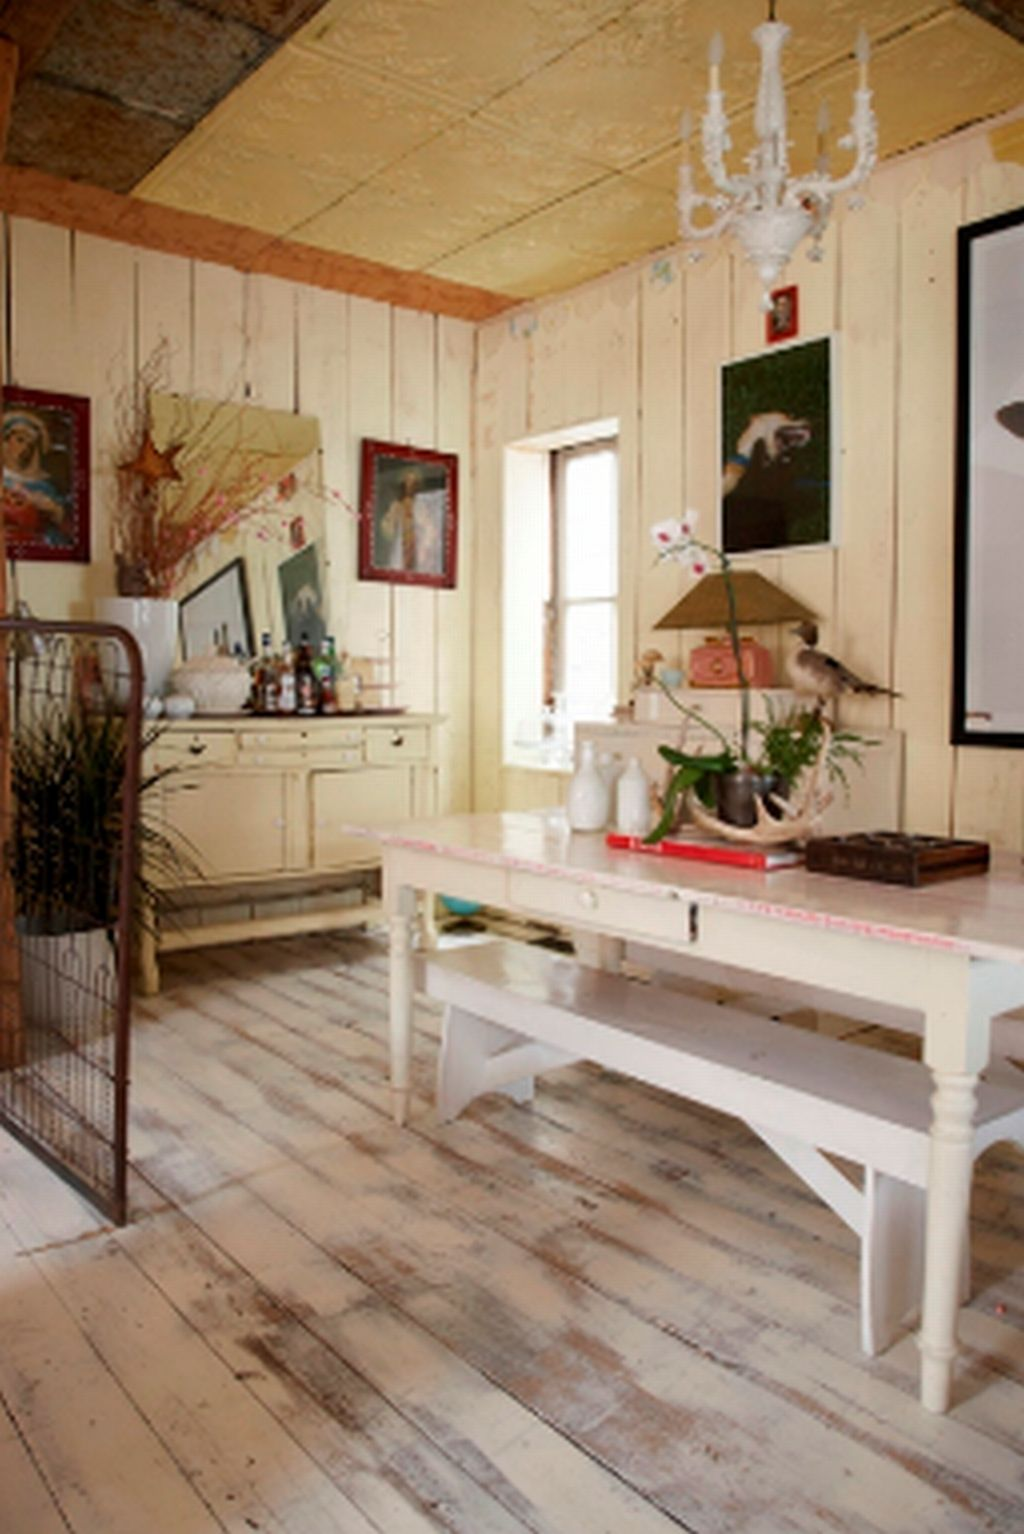 country interior design - 1000+ images about ustic floors on Pinterest ustic floors ...